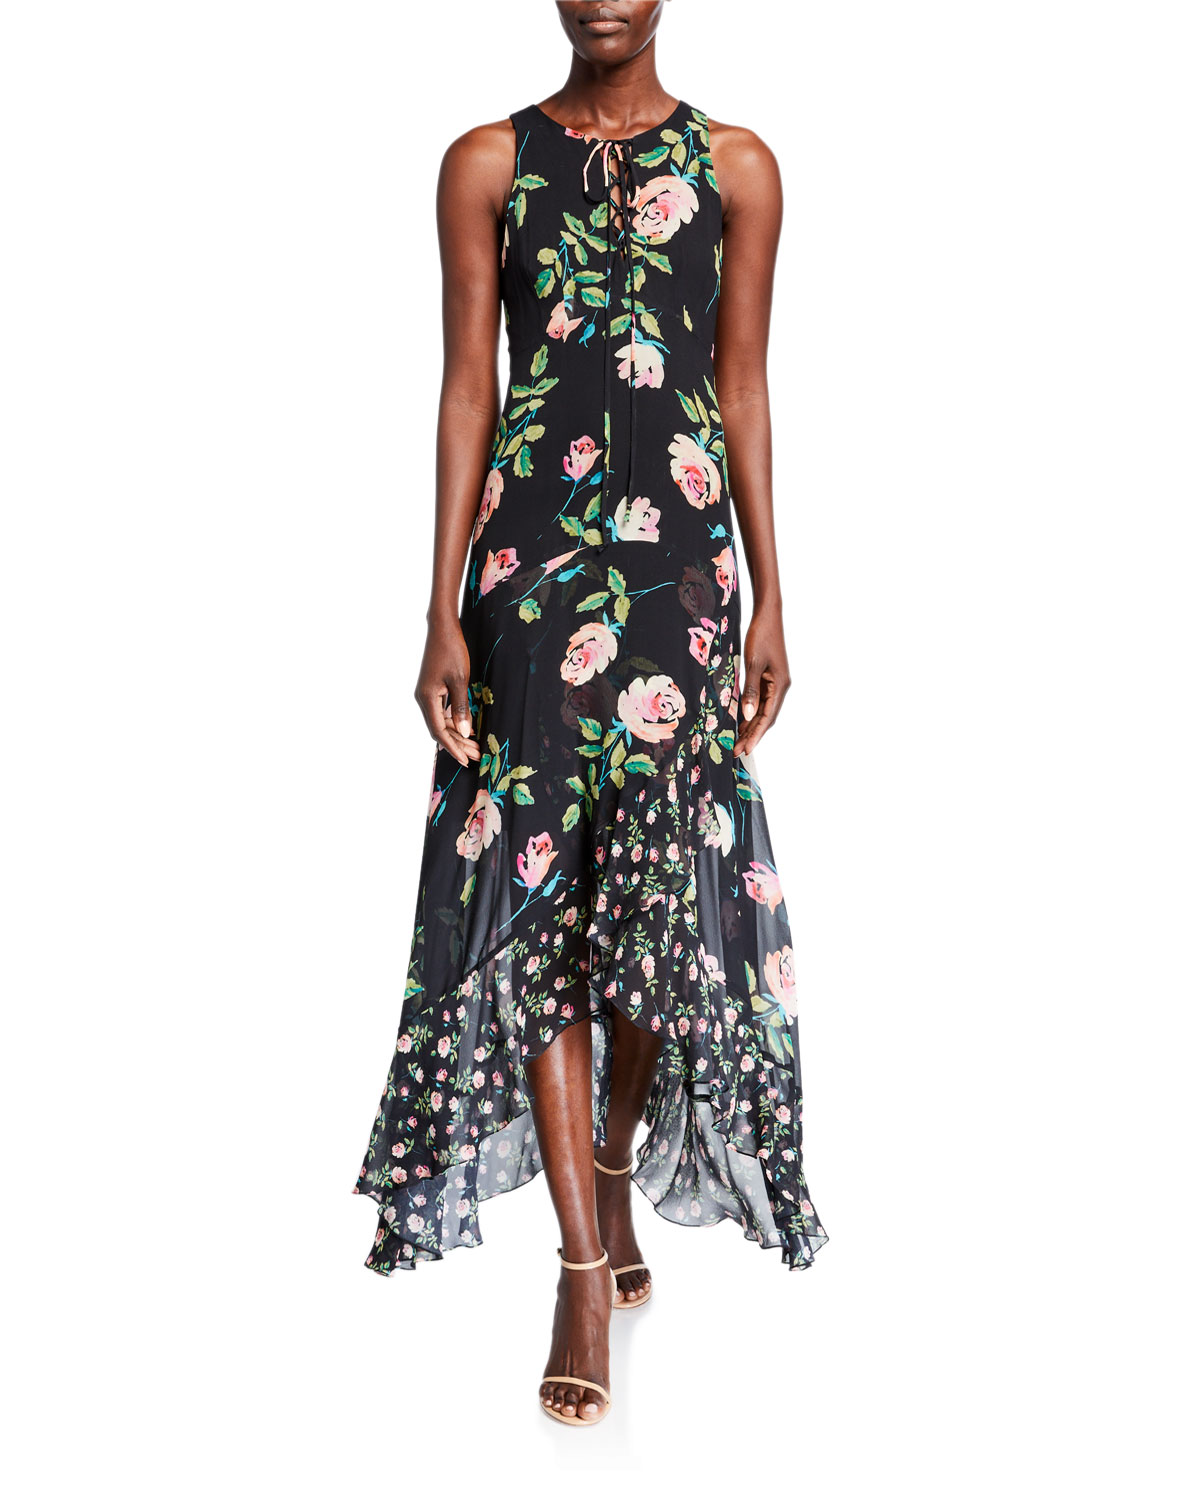 Nanette Lepore Roses Lace-Up Sleeveless High-Low Maxi Dress